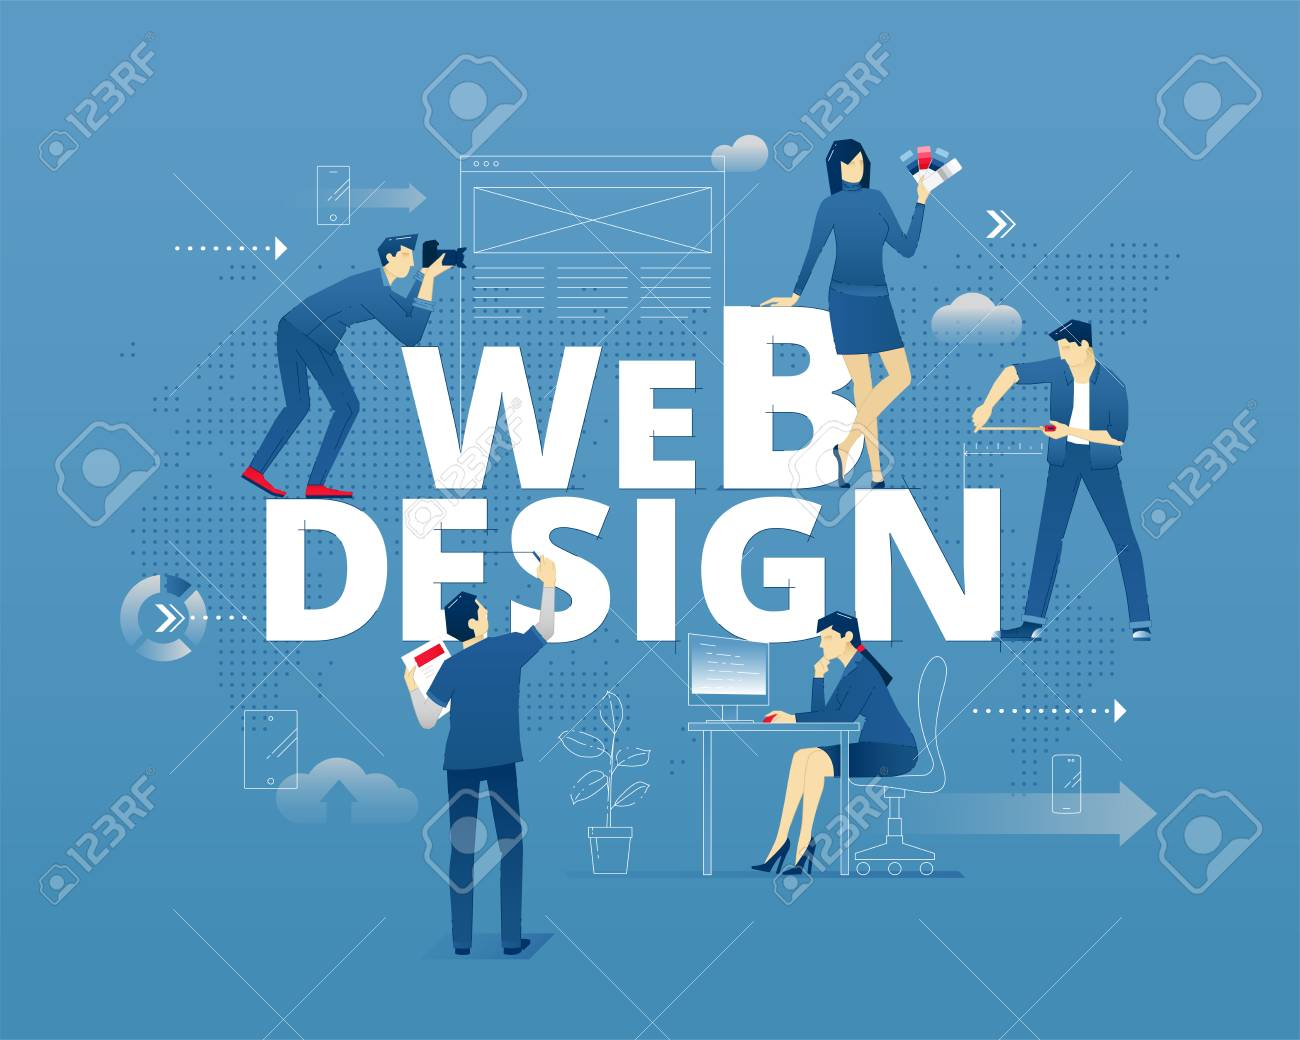 Visual metaphor of web design and web designers  Yuong creative